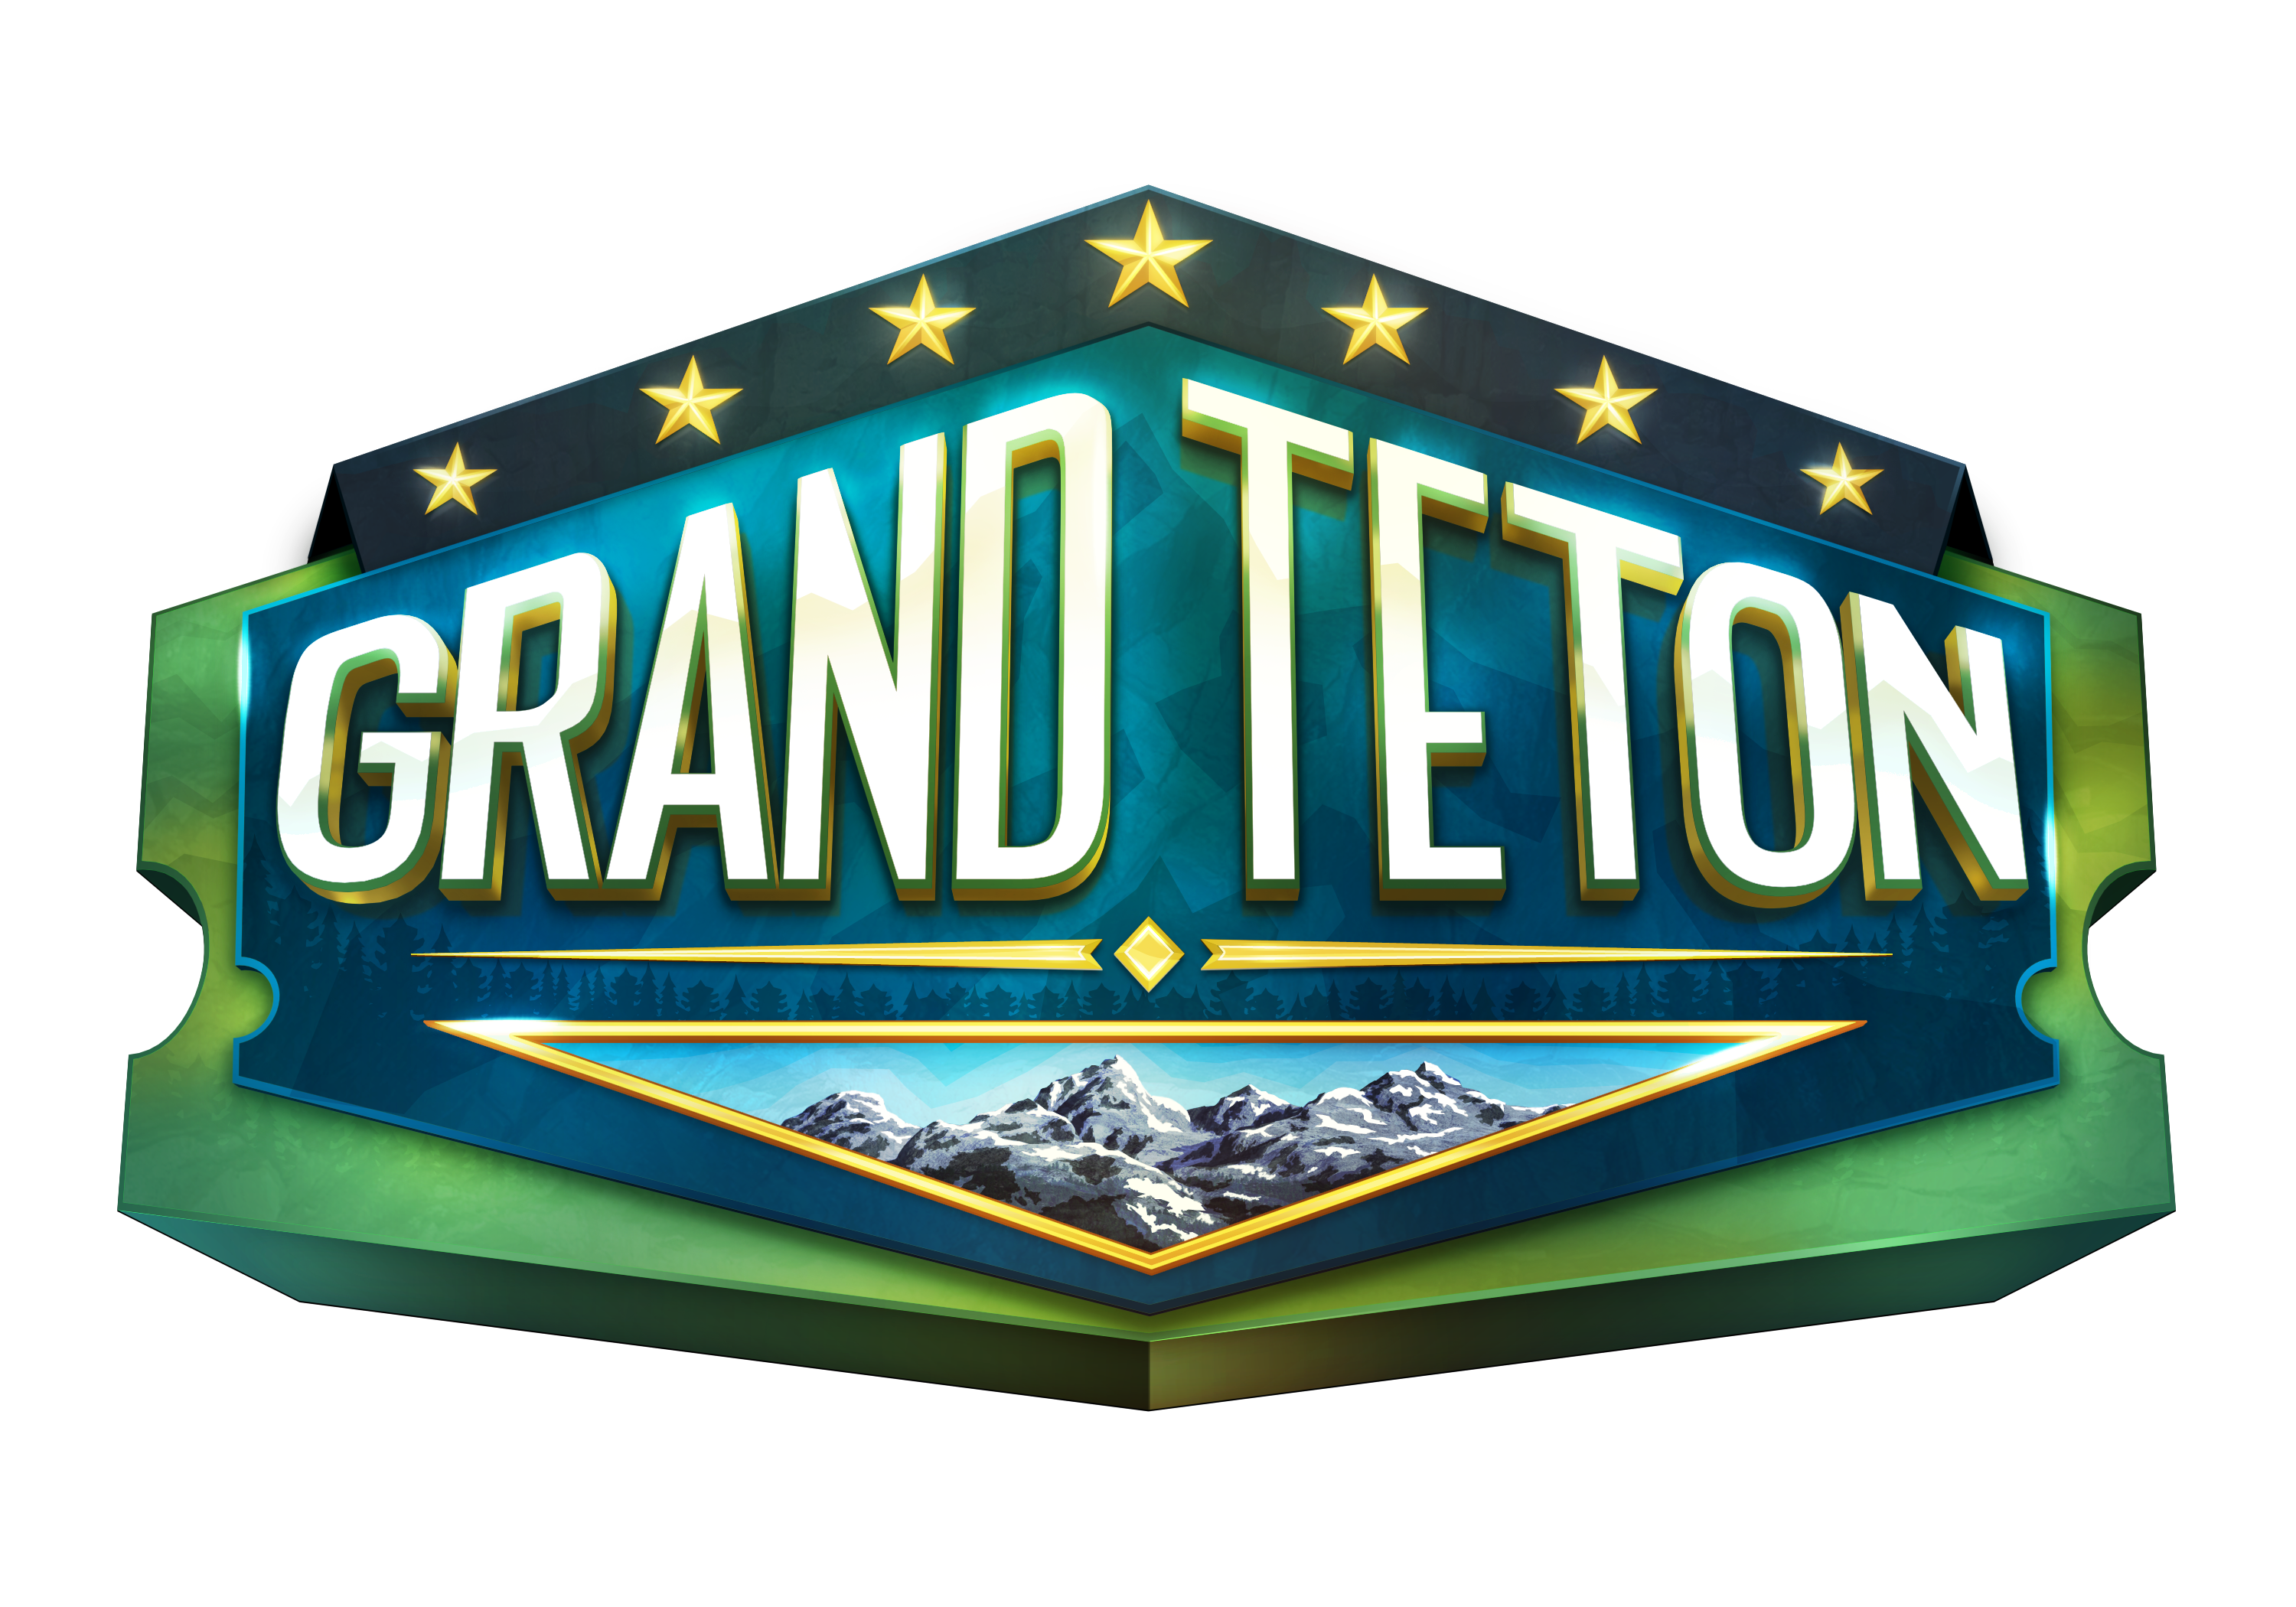 Grand Teton course logo